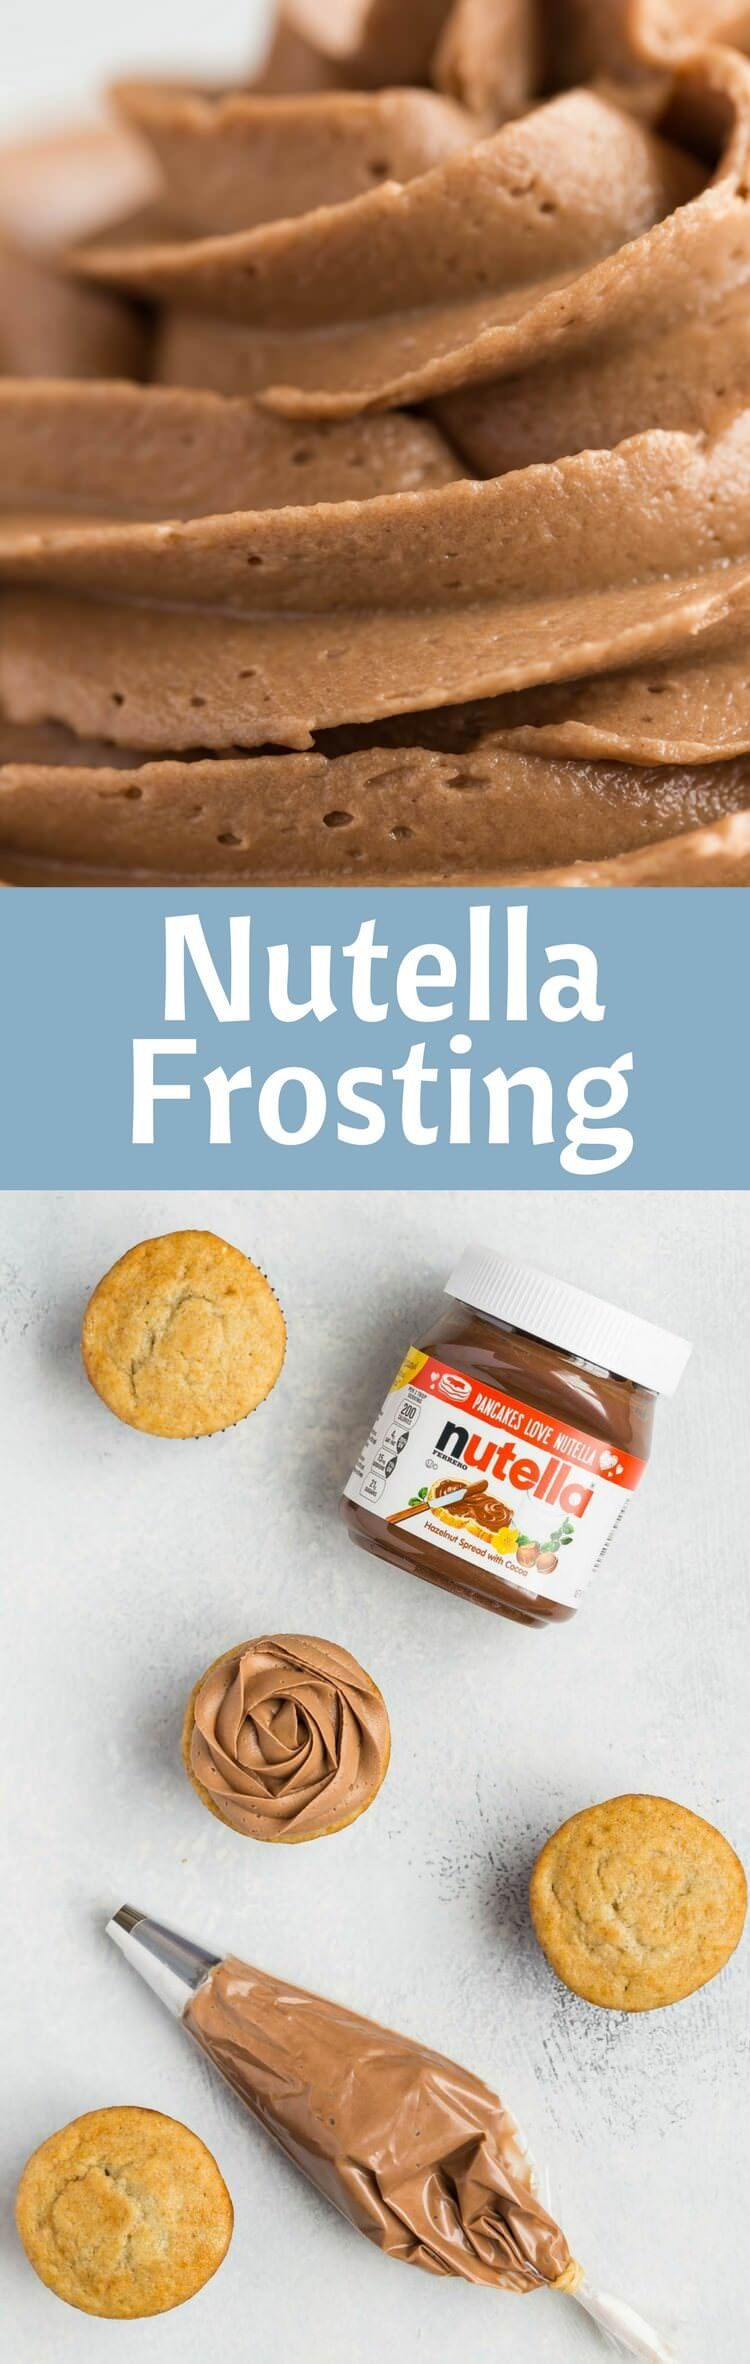 Nutella Frosting Recipe | Easy | Frosting | Made from Scratch | Homemade via @introvertbaker